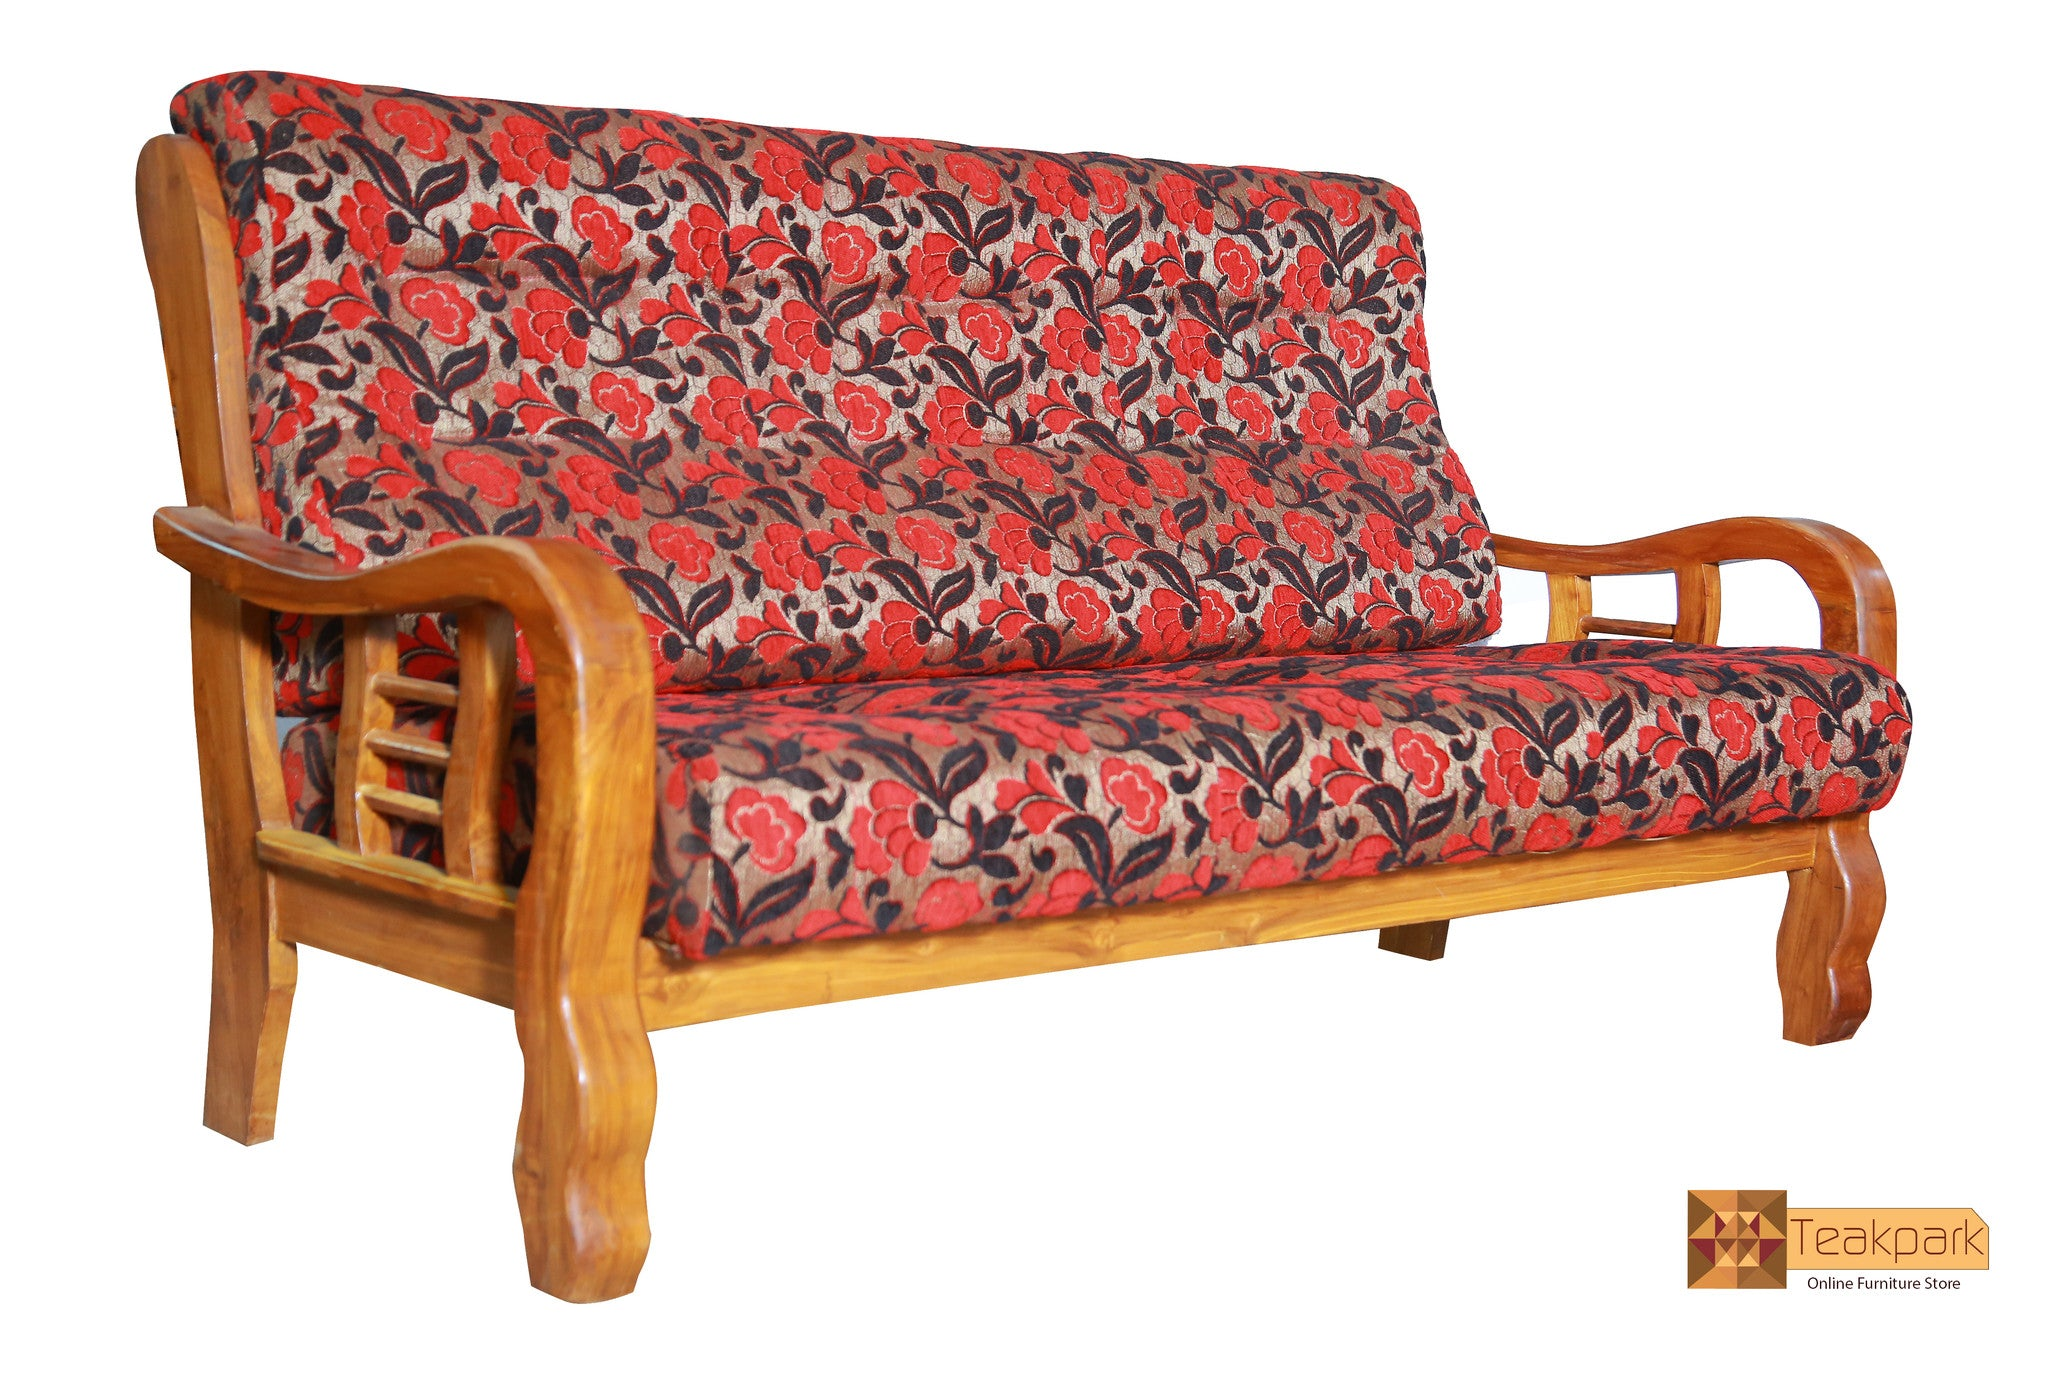 Shanghai Teak Wood Sofa Set 3 1 1 Seater Teakpark